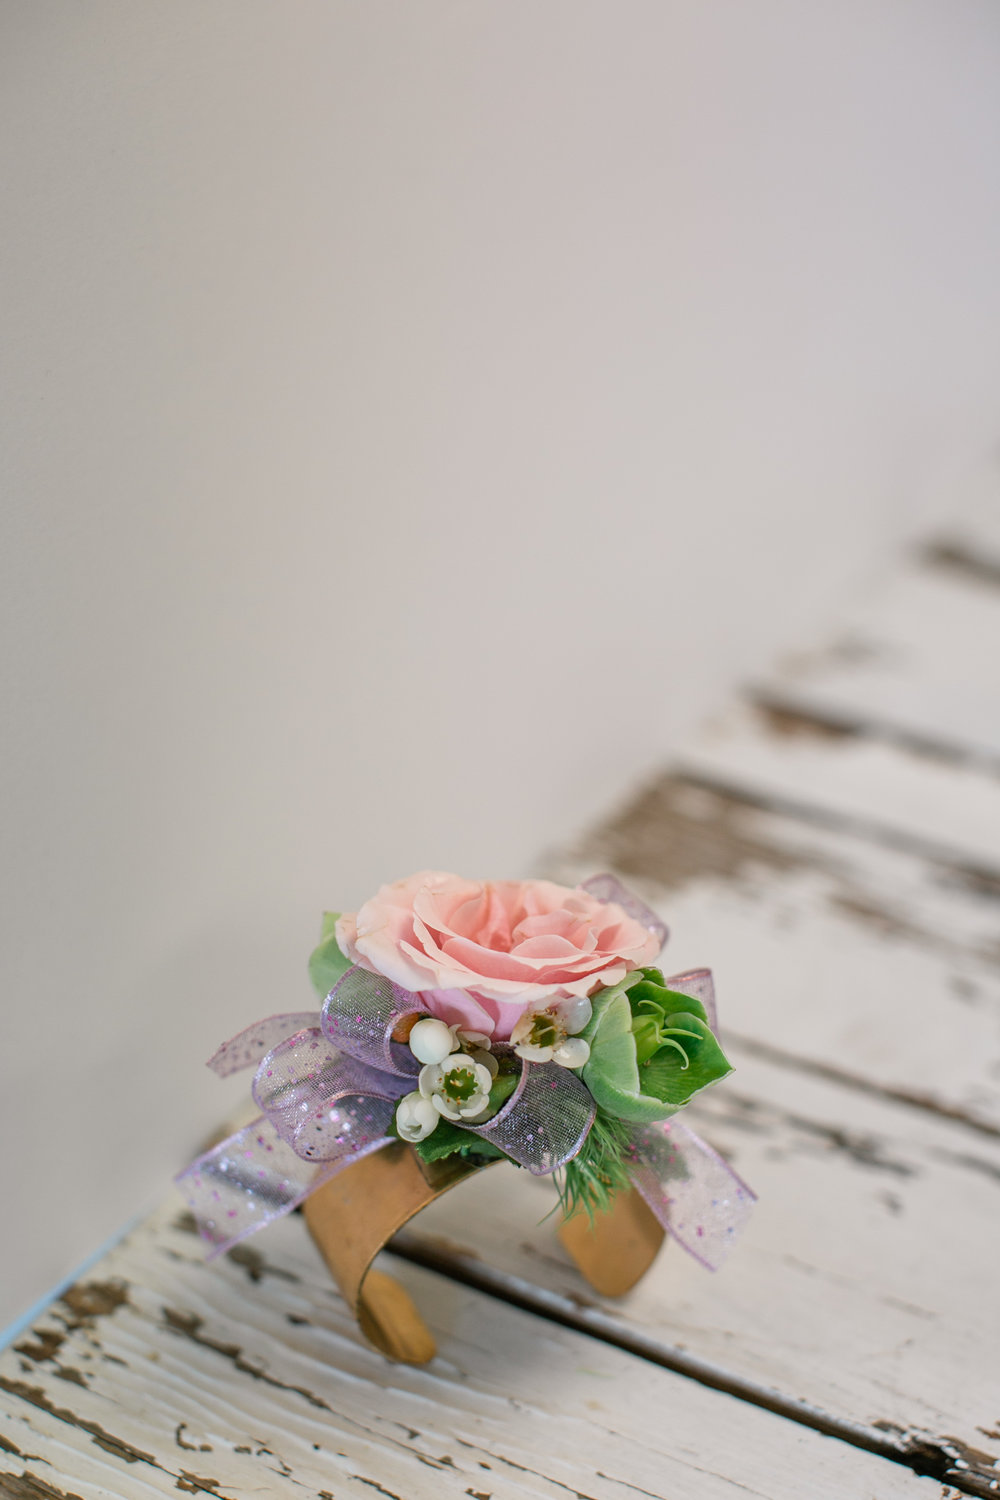 Send   Prom Corsages   & Boutonnieres today! Same day delivery to   Des Moines  , IA and surrounding areas. Buy the freshest   flowers   from Lavender Blue